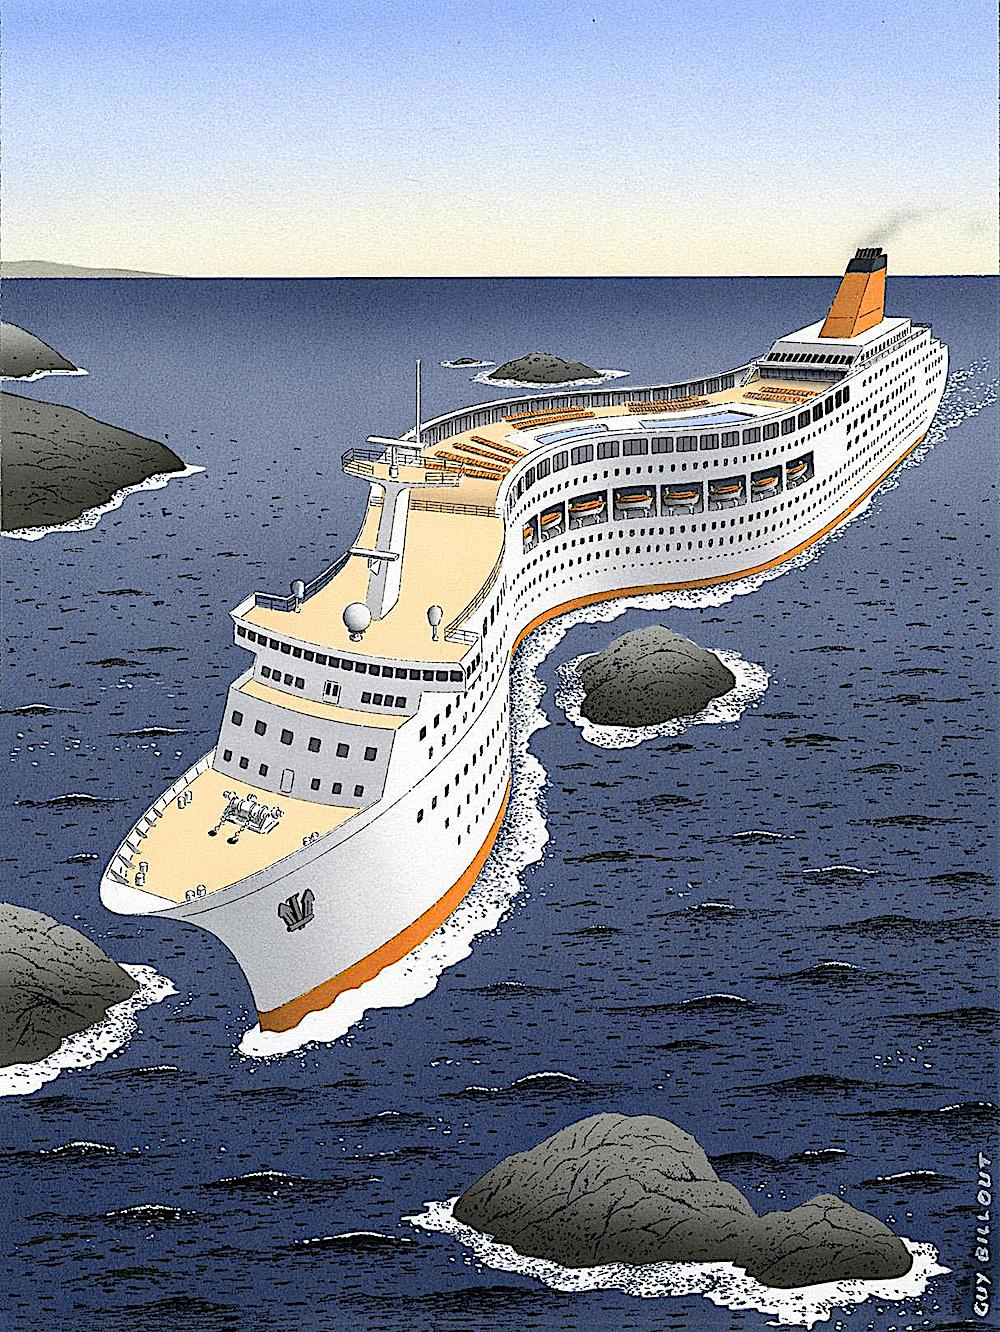 Guy Billout art, a cruise ship bends to avoid a rock